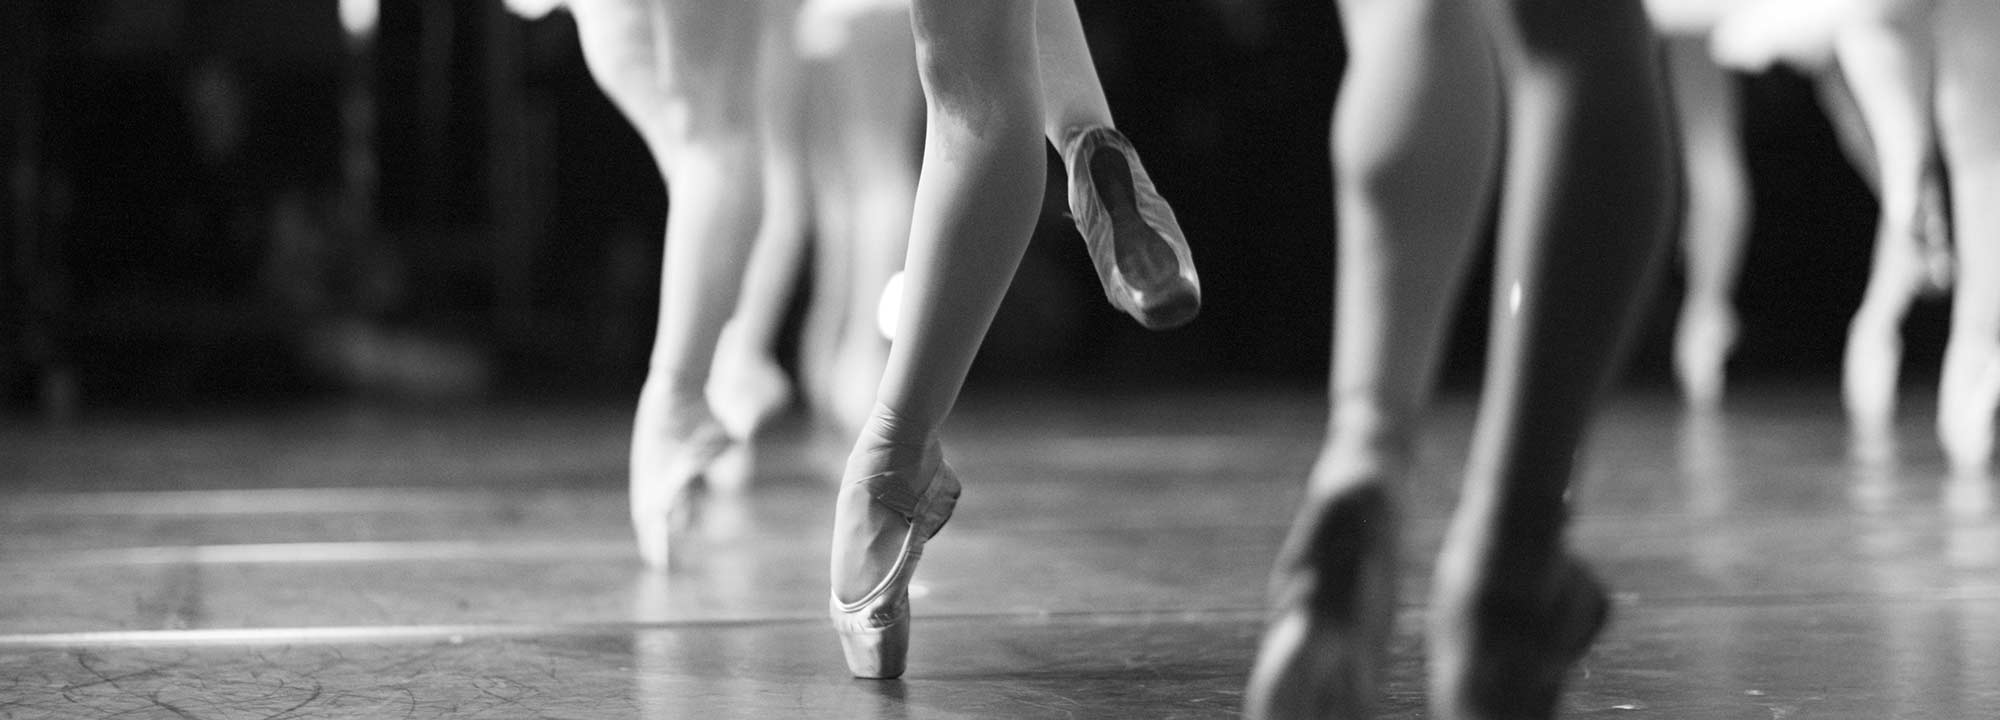 Female ballet dancers legs and feet